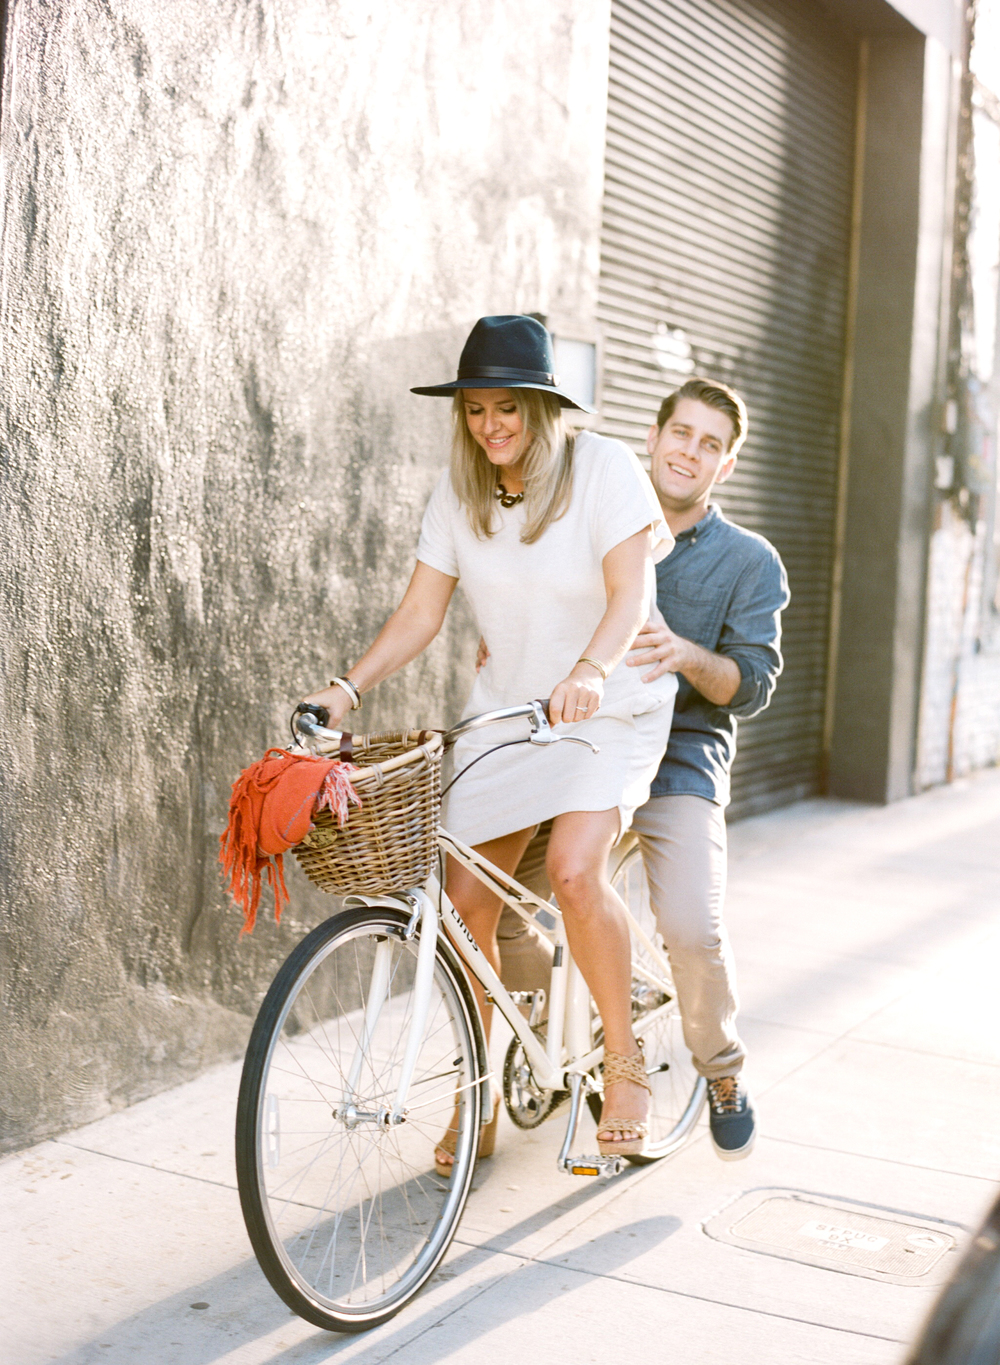 Couple rides a bike together down an alley in San Francisco during an engagement shoot with Sylvie Gill.